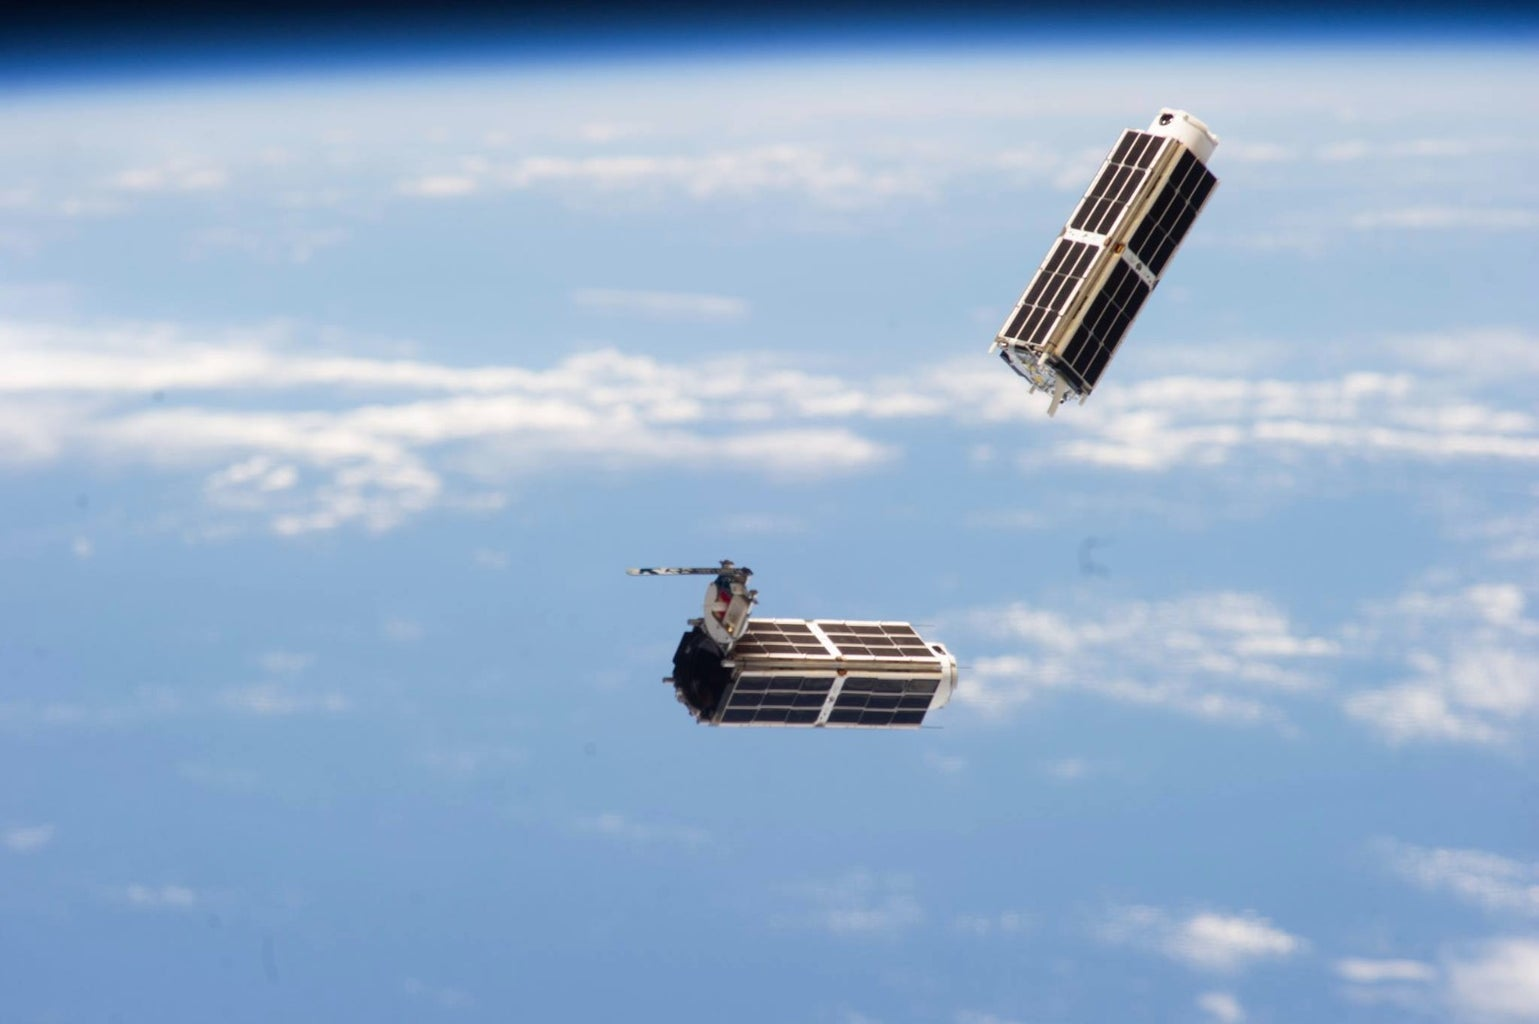 Release Satellites From International Space Station